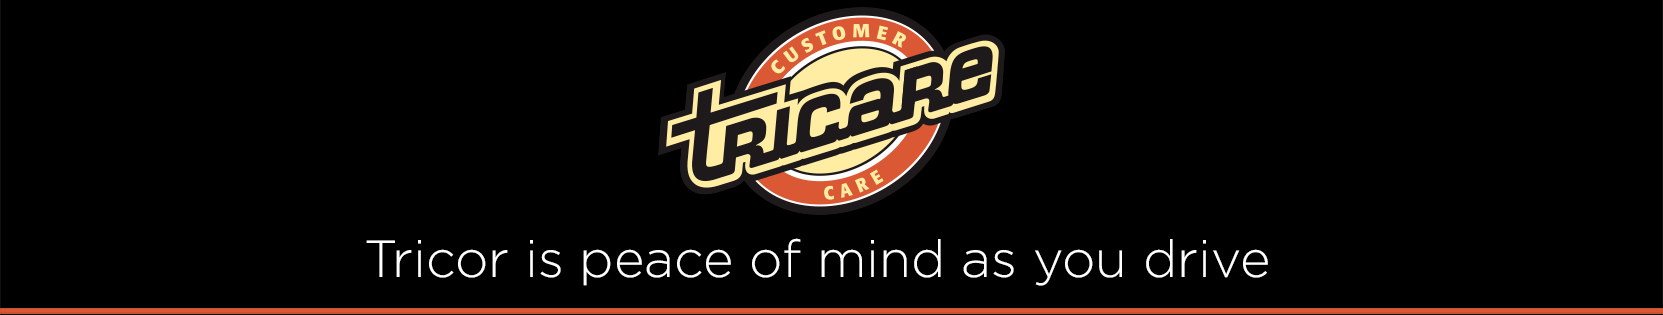 Tricare Extended Warranty Pathway Hyundai